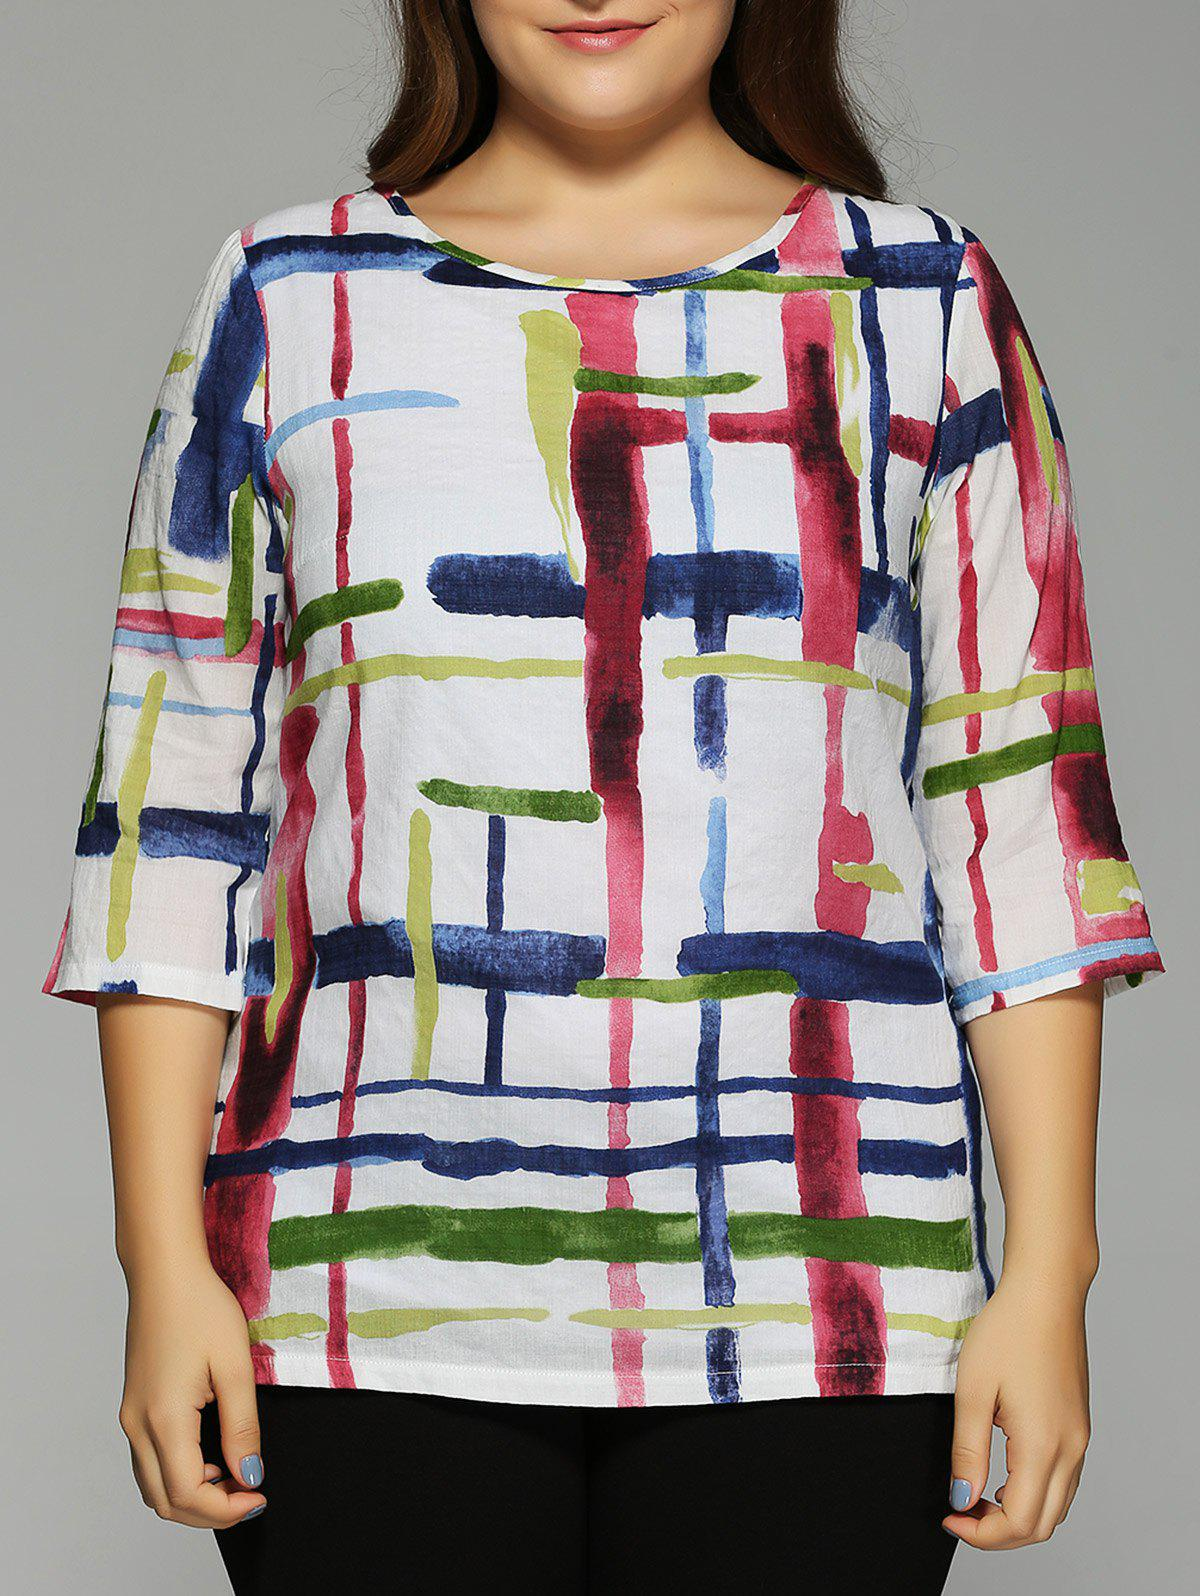 Oversized Fashion Abstract Geometric Painting Blouse - COLORMIX 5XL